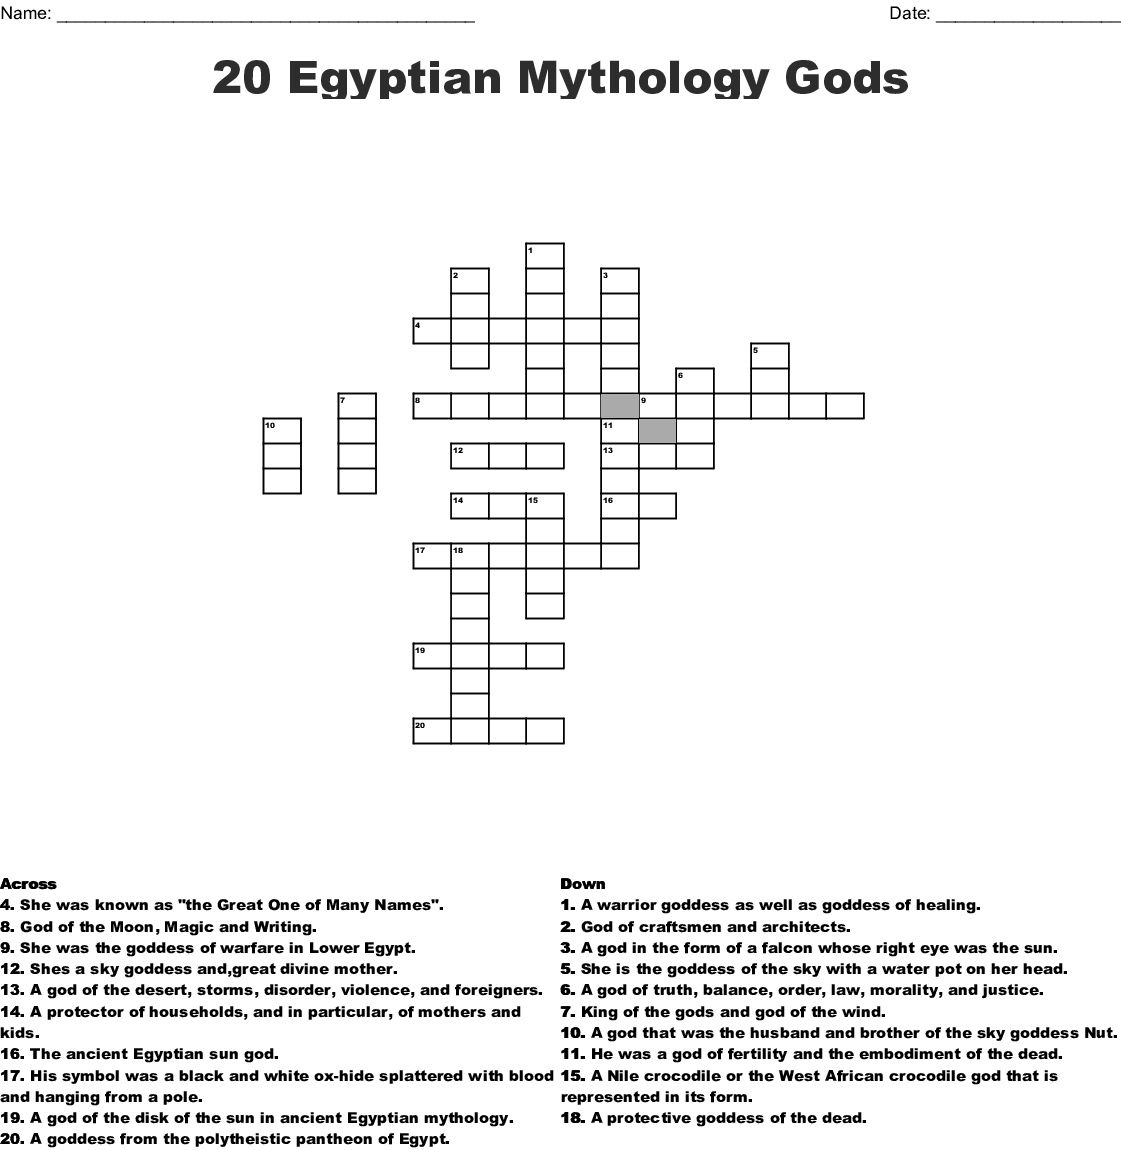 Gods and Goddesses of Ancient Egypt Crossword - WordMint